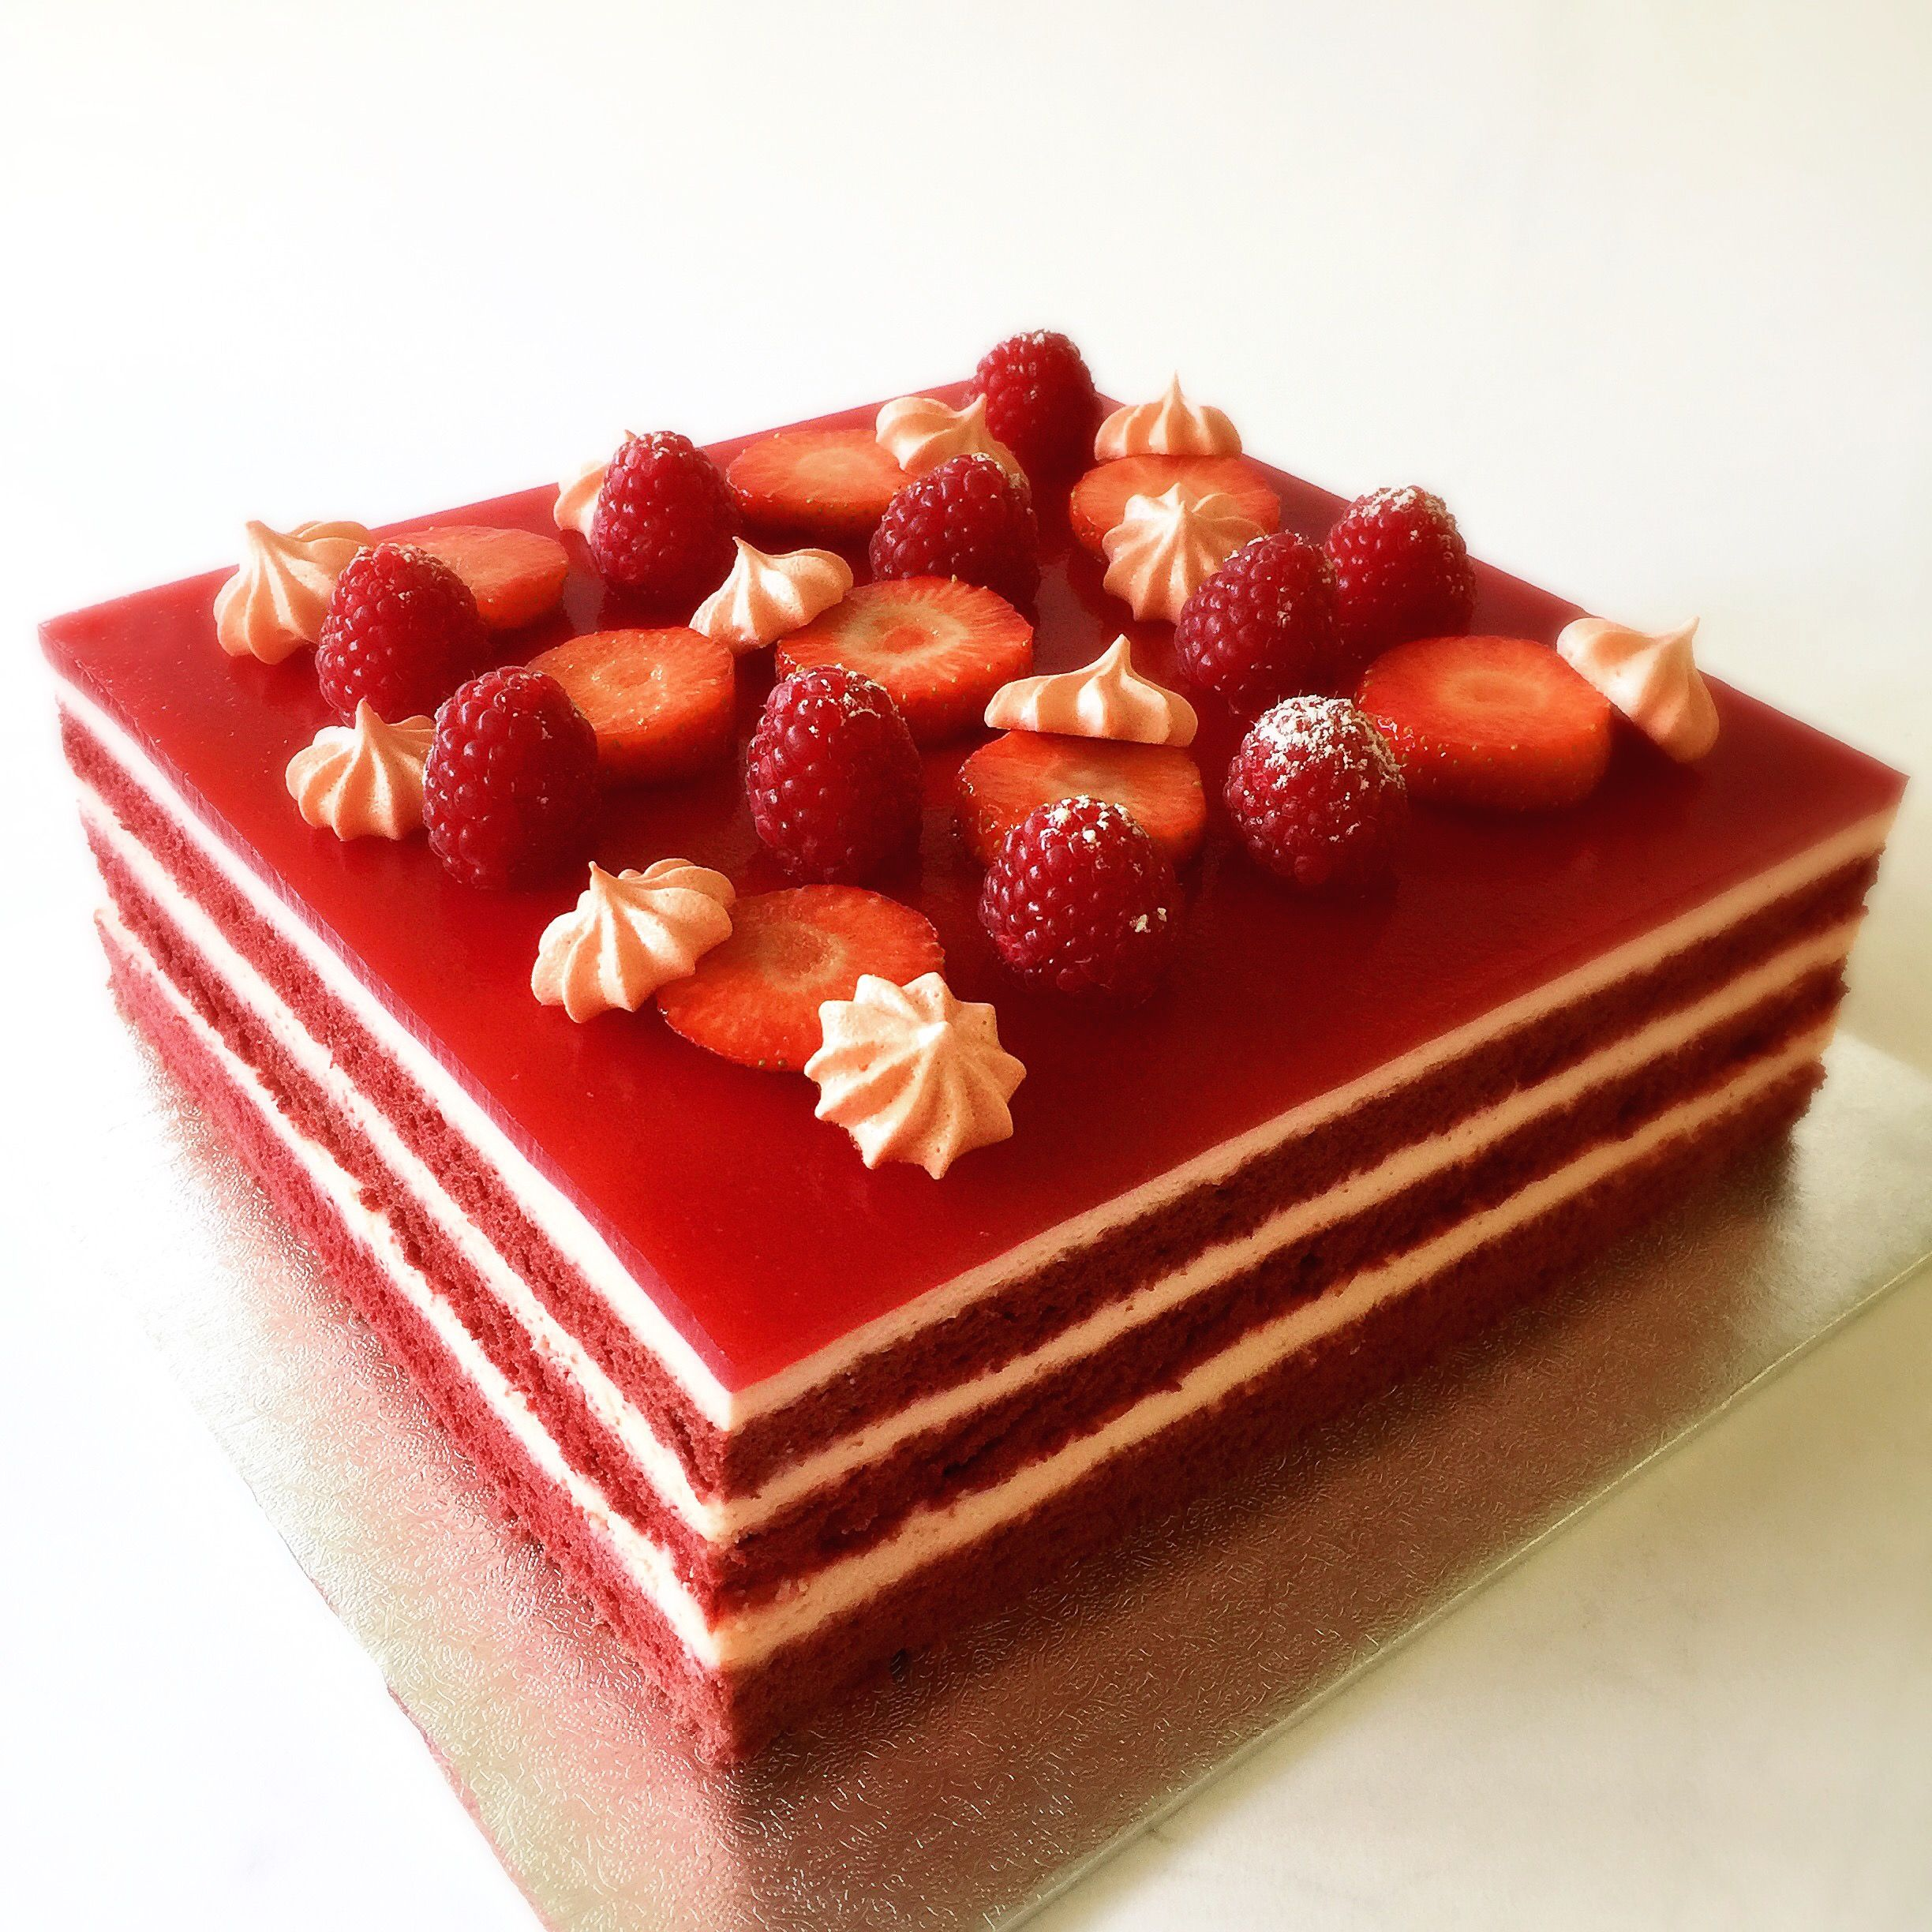 Red Velvet Sponge Cake Layered With Chocolate Mousse And Raspberry Jelly Decorated With Berries And Strawberry Meringue Kisse Mousse Cake Recipe Cake Red Cake